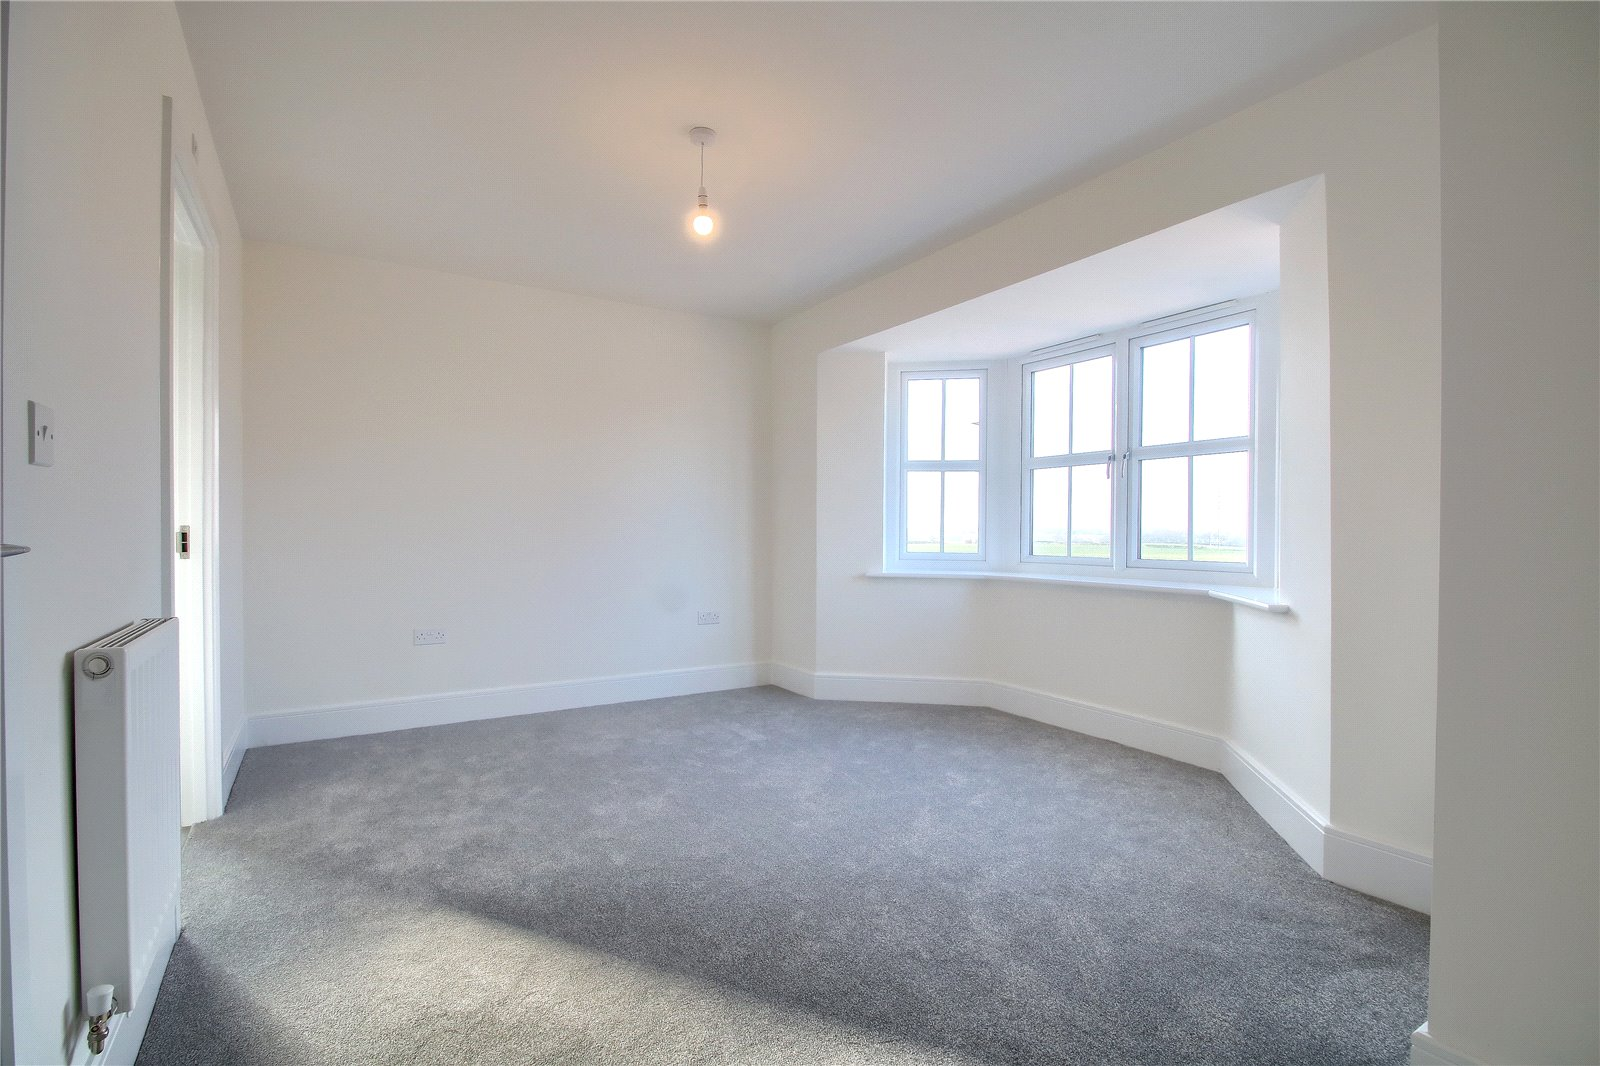 5 bed house for sale in Yew Close, Yarm  - Property Image 14